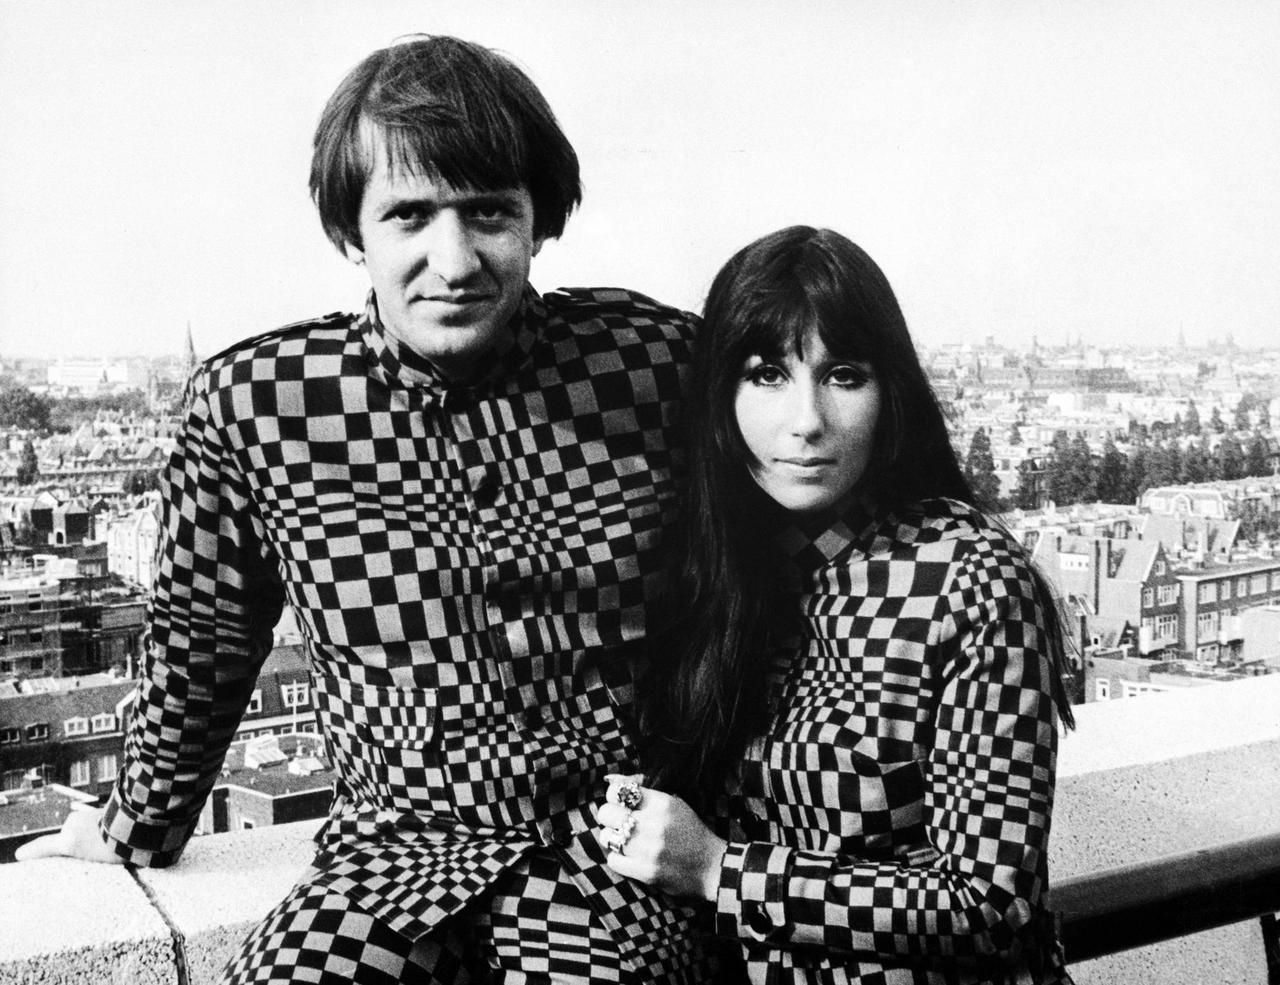 SONNY & CHER outtake from Austin Powers late 60s